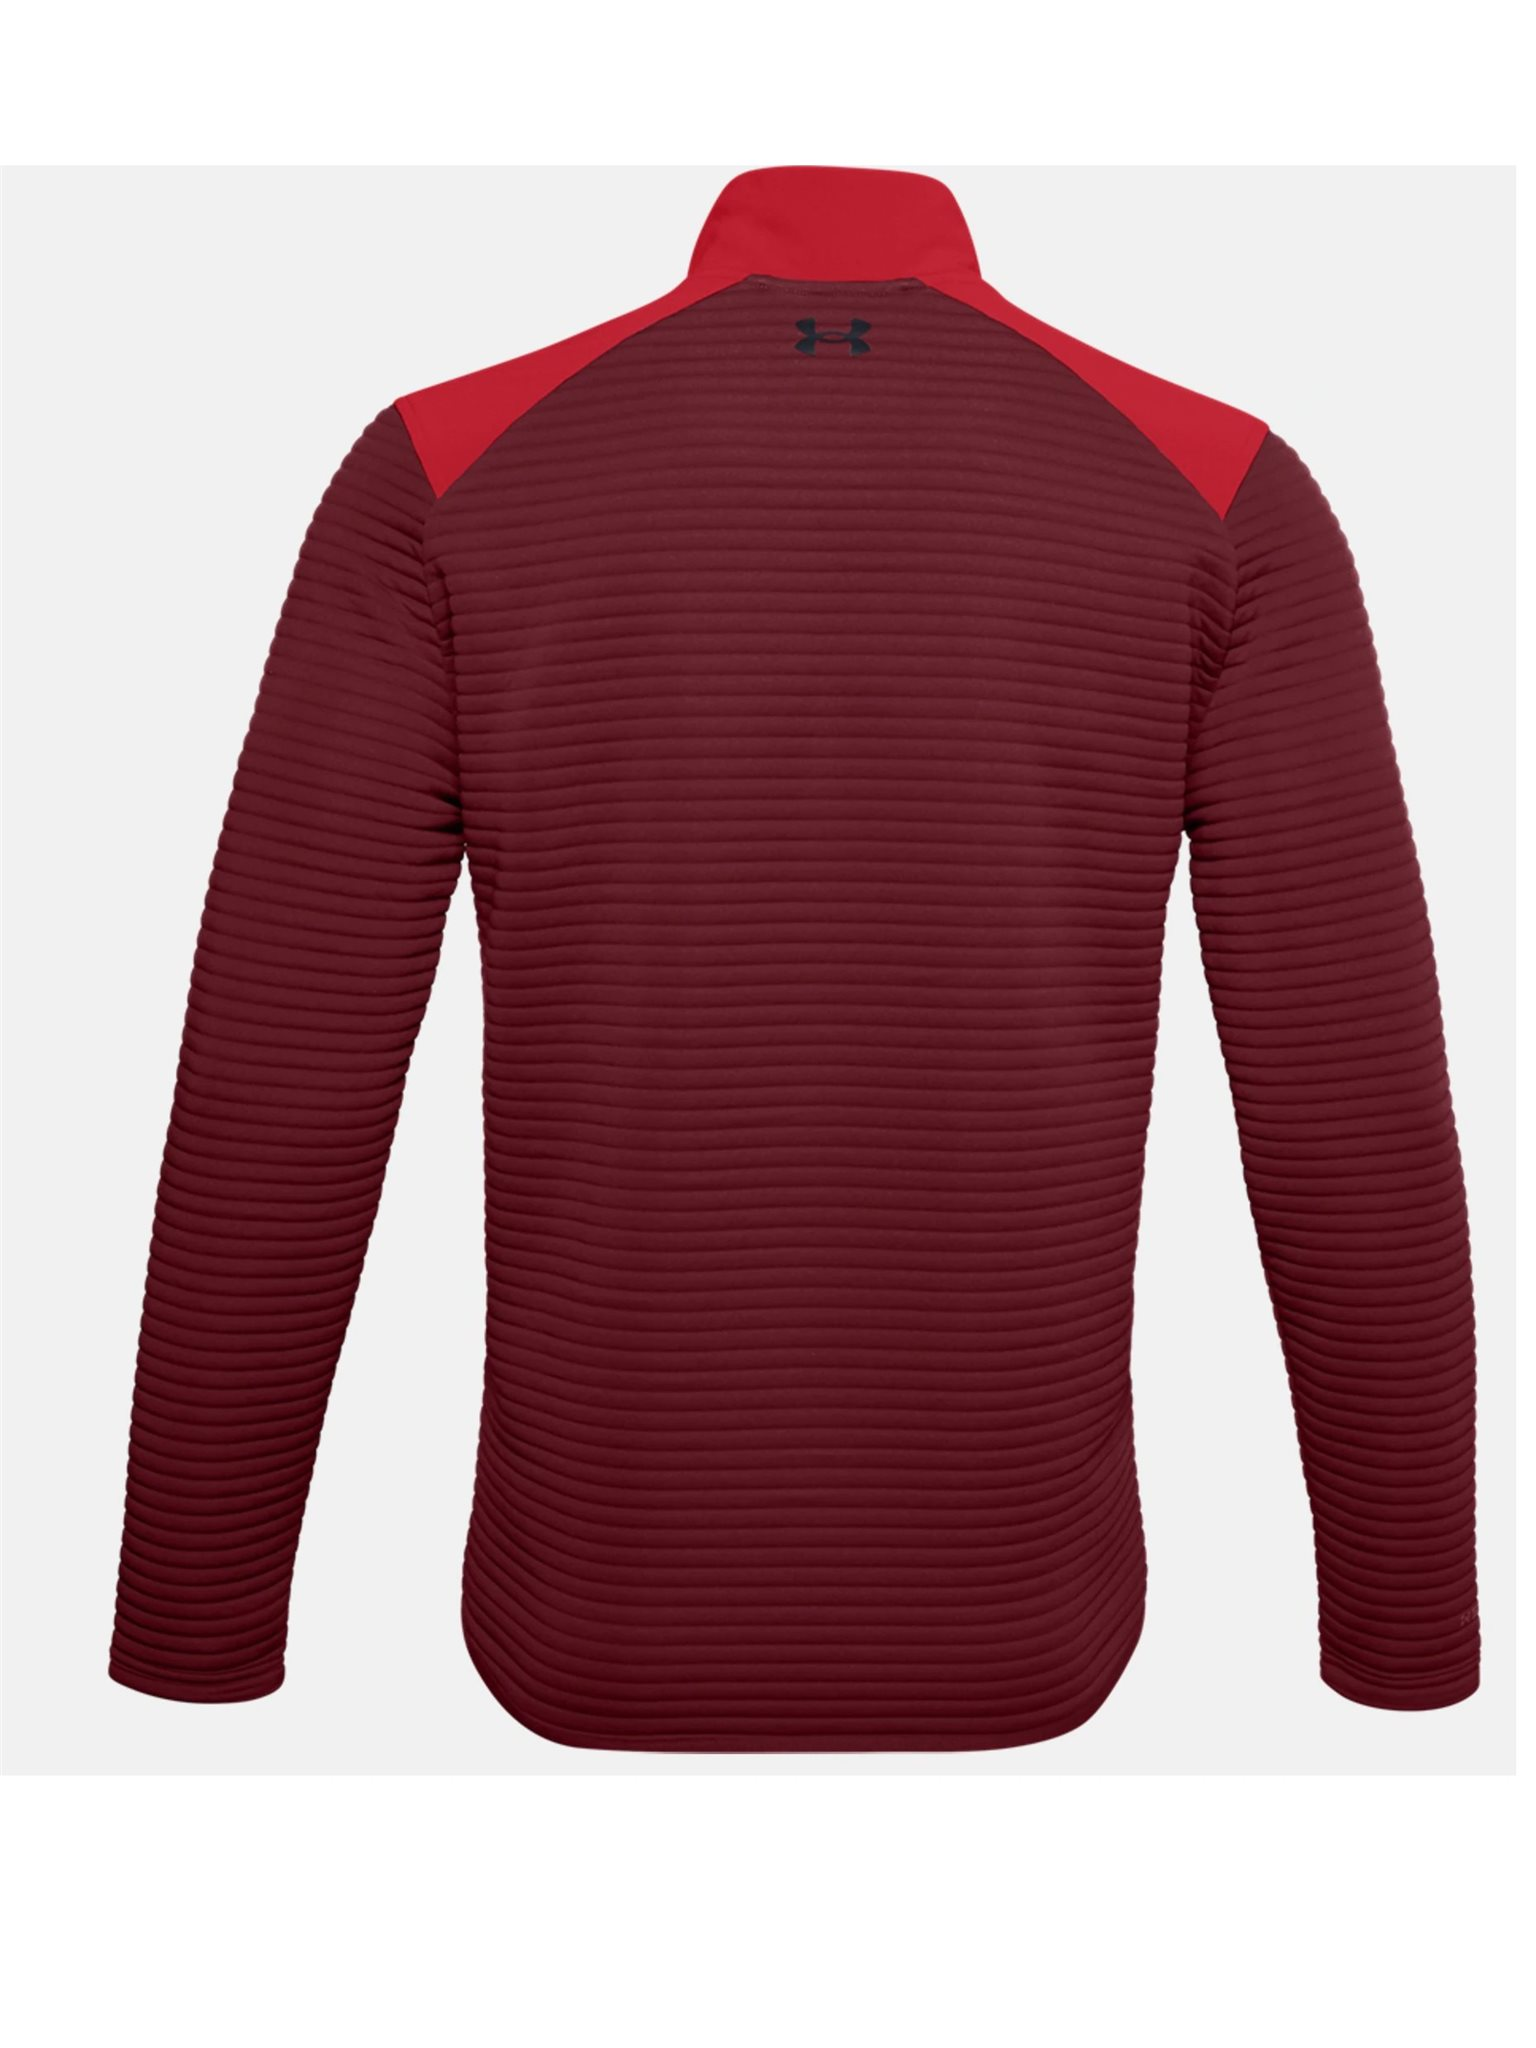 Under Armour heren golfsweater Storm Evolution Daytona rood